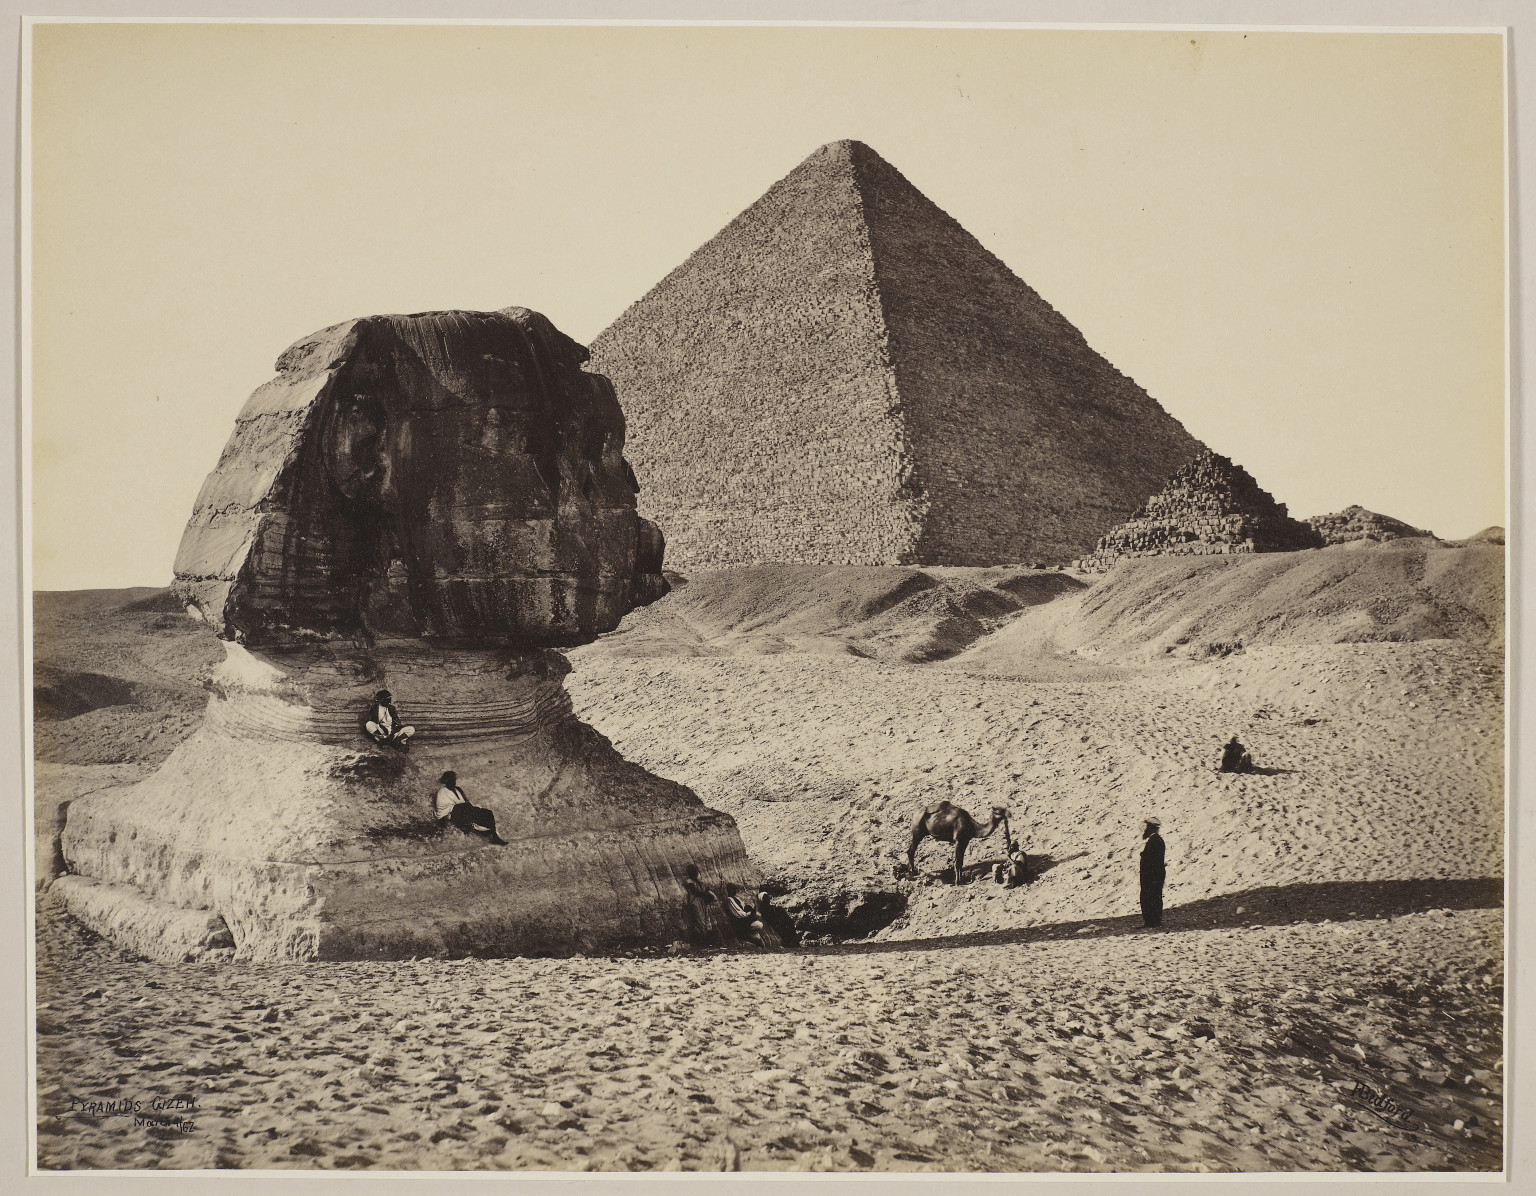 Francis Bedford, 'The Sphinx, the Great Pyramid and two lesser Pyramids, Ghizeh, Egypt'.